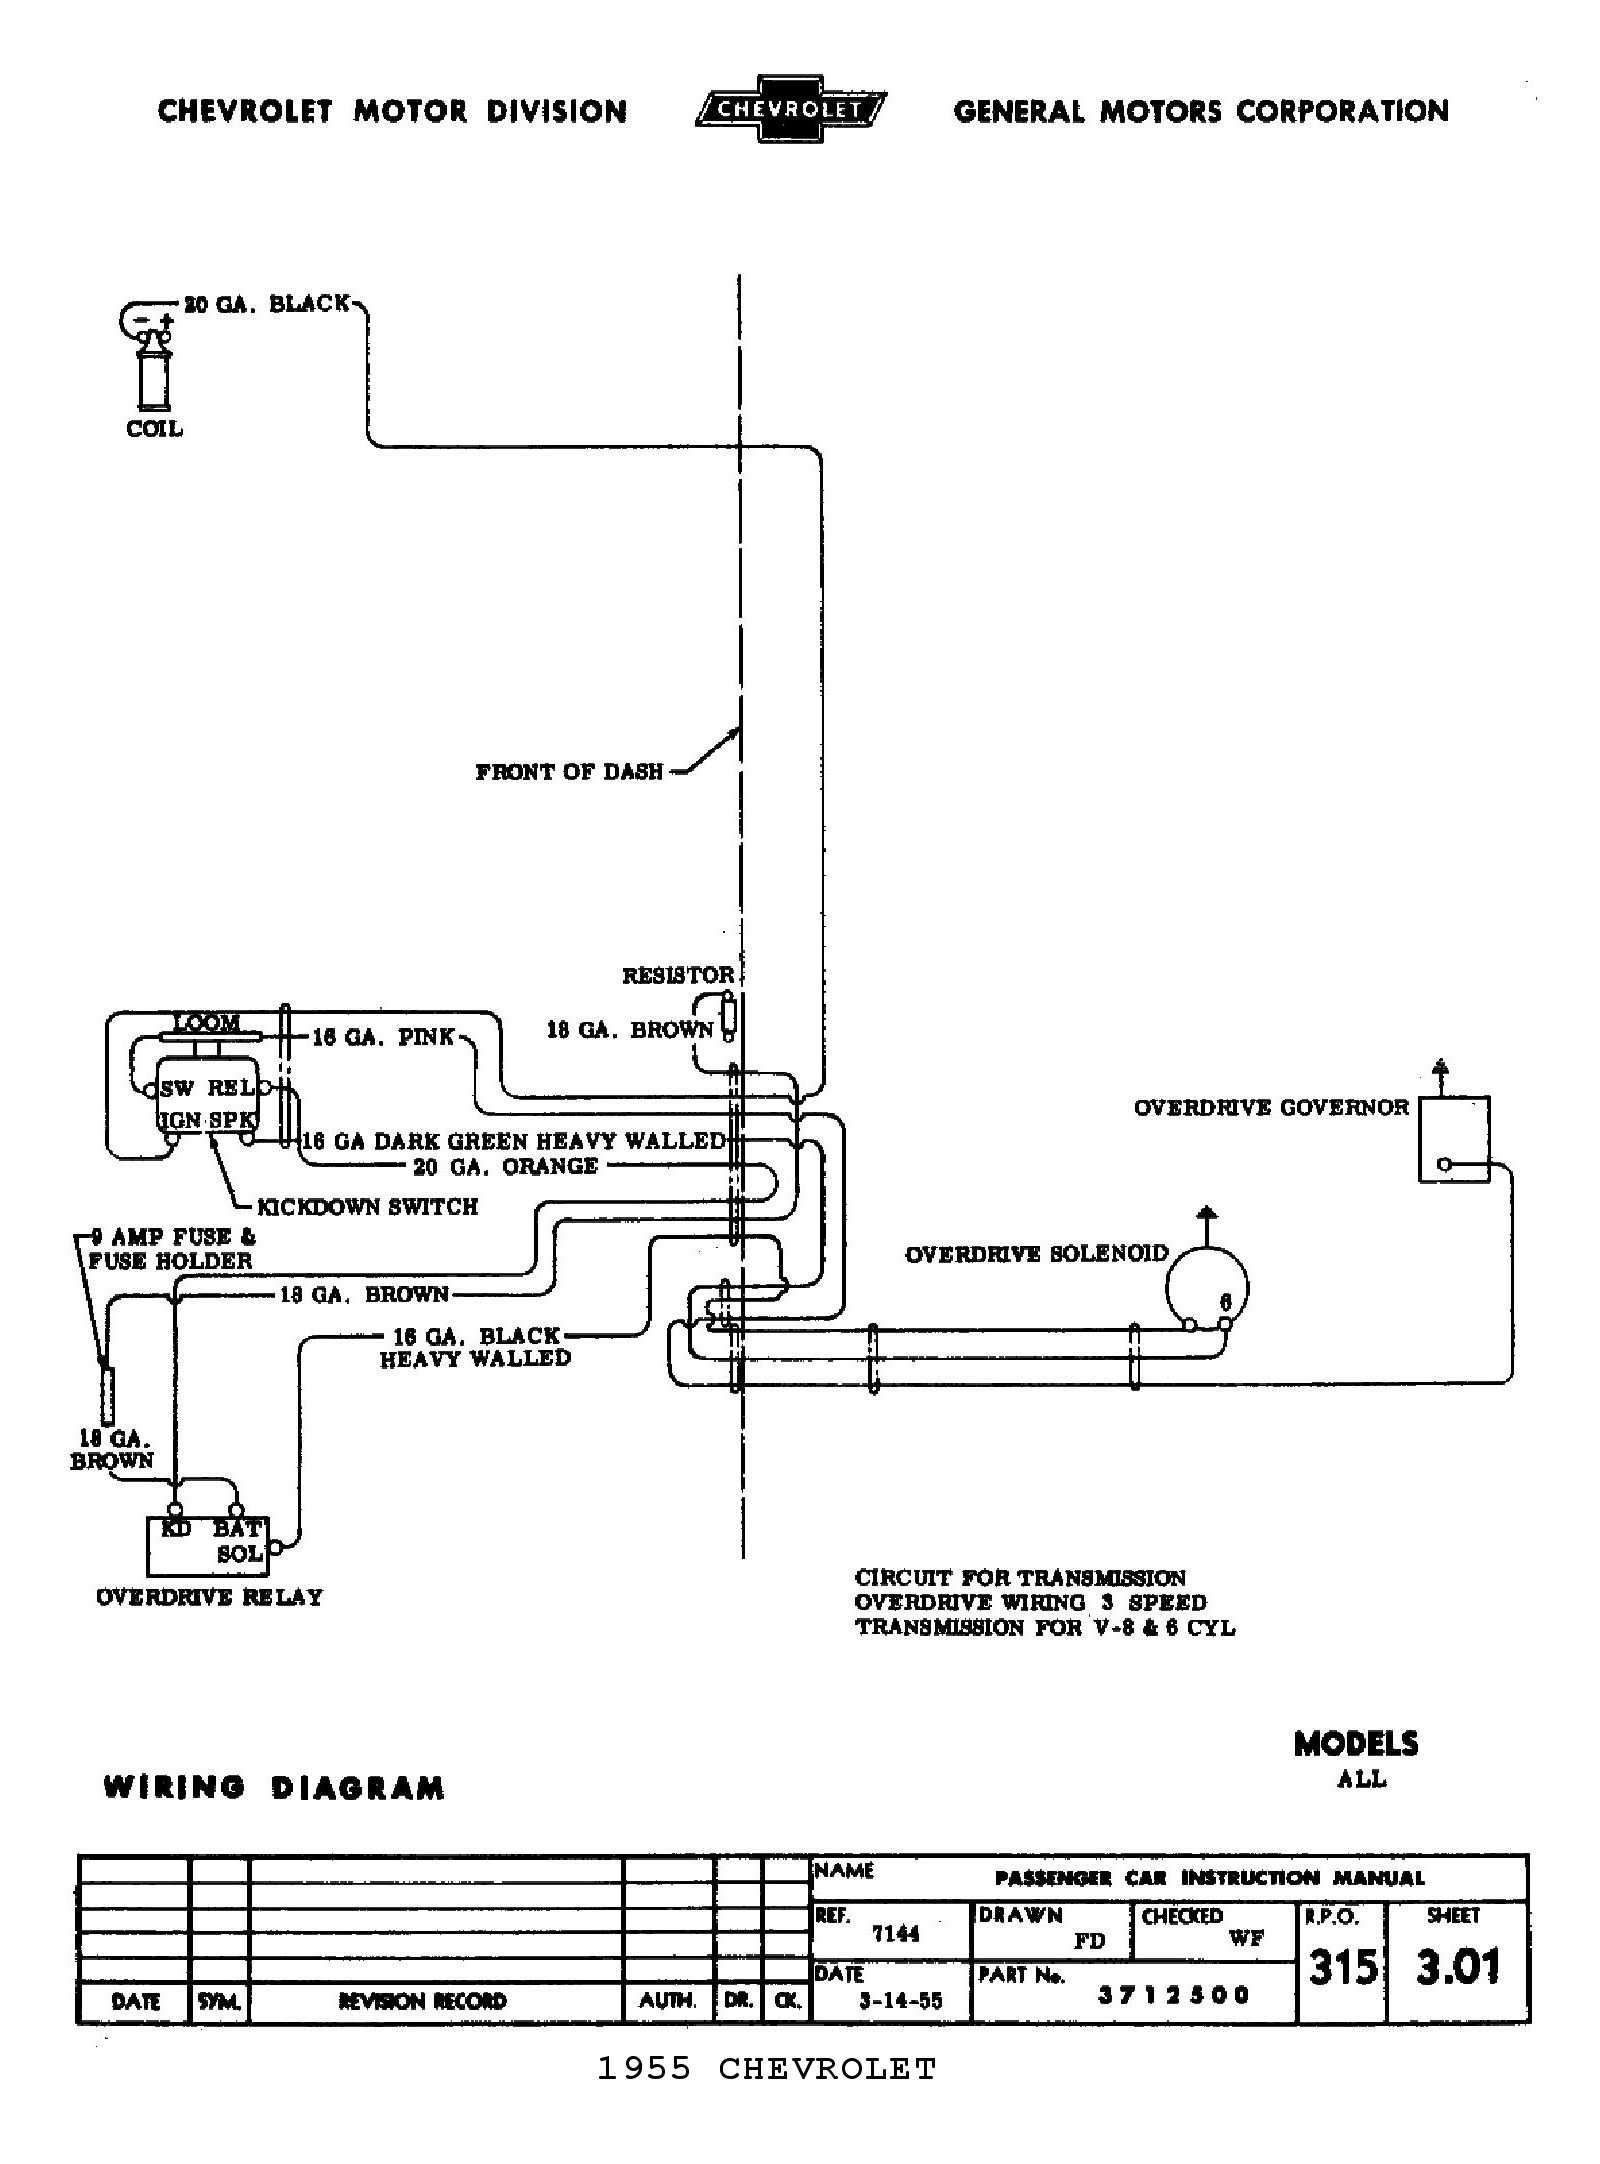 1989 Chevy Wiring Diagram For 1995 G30 Van Truck Image 1500 1955 5 Speed